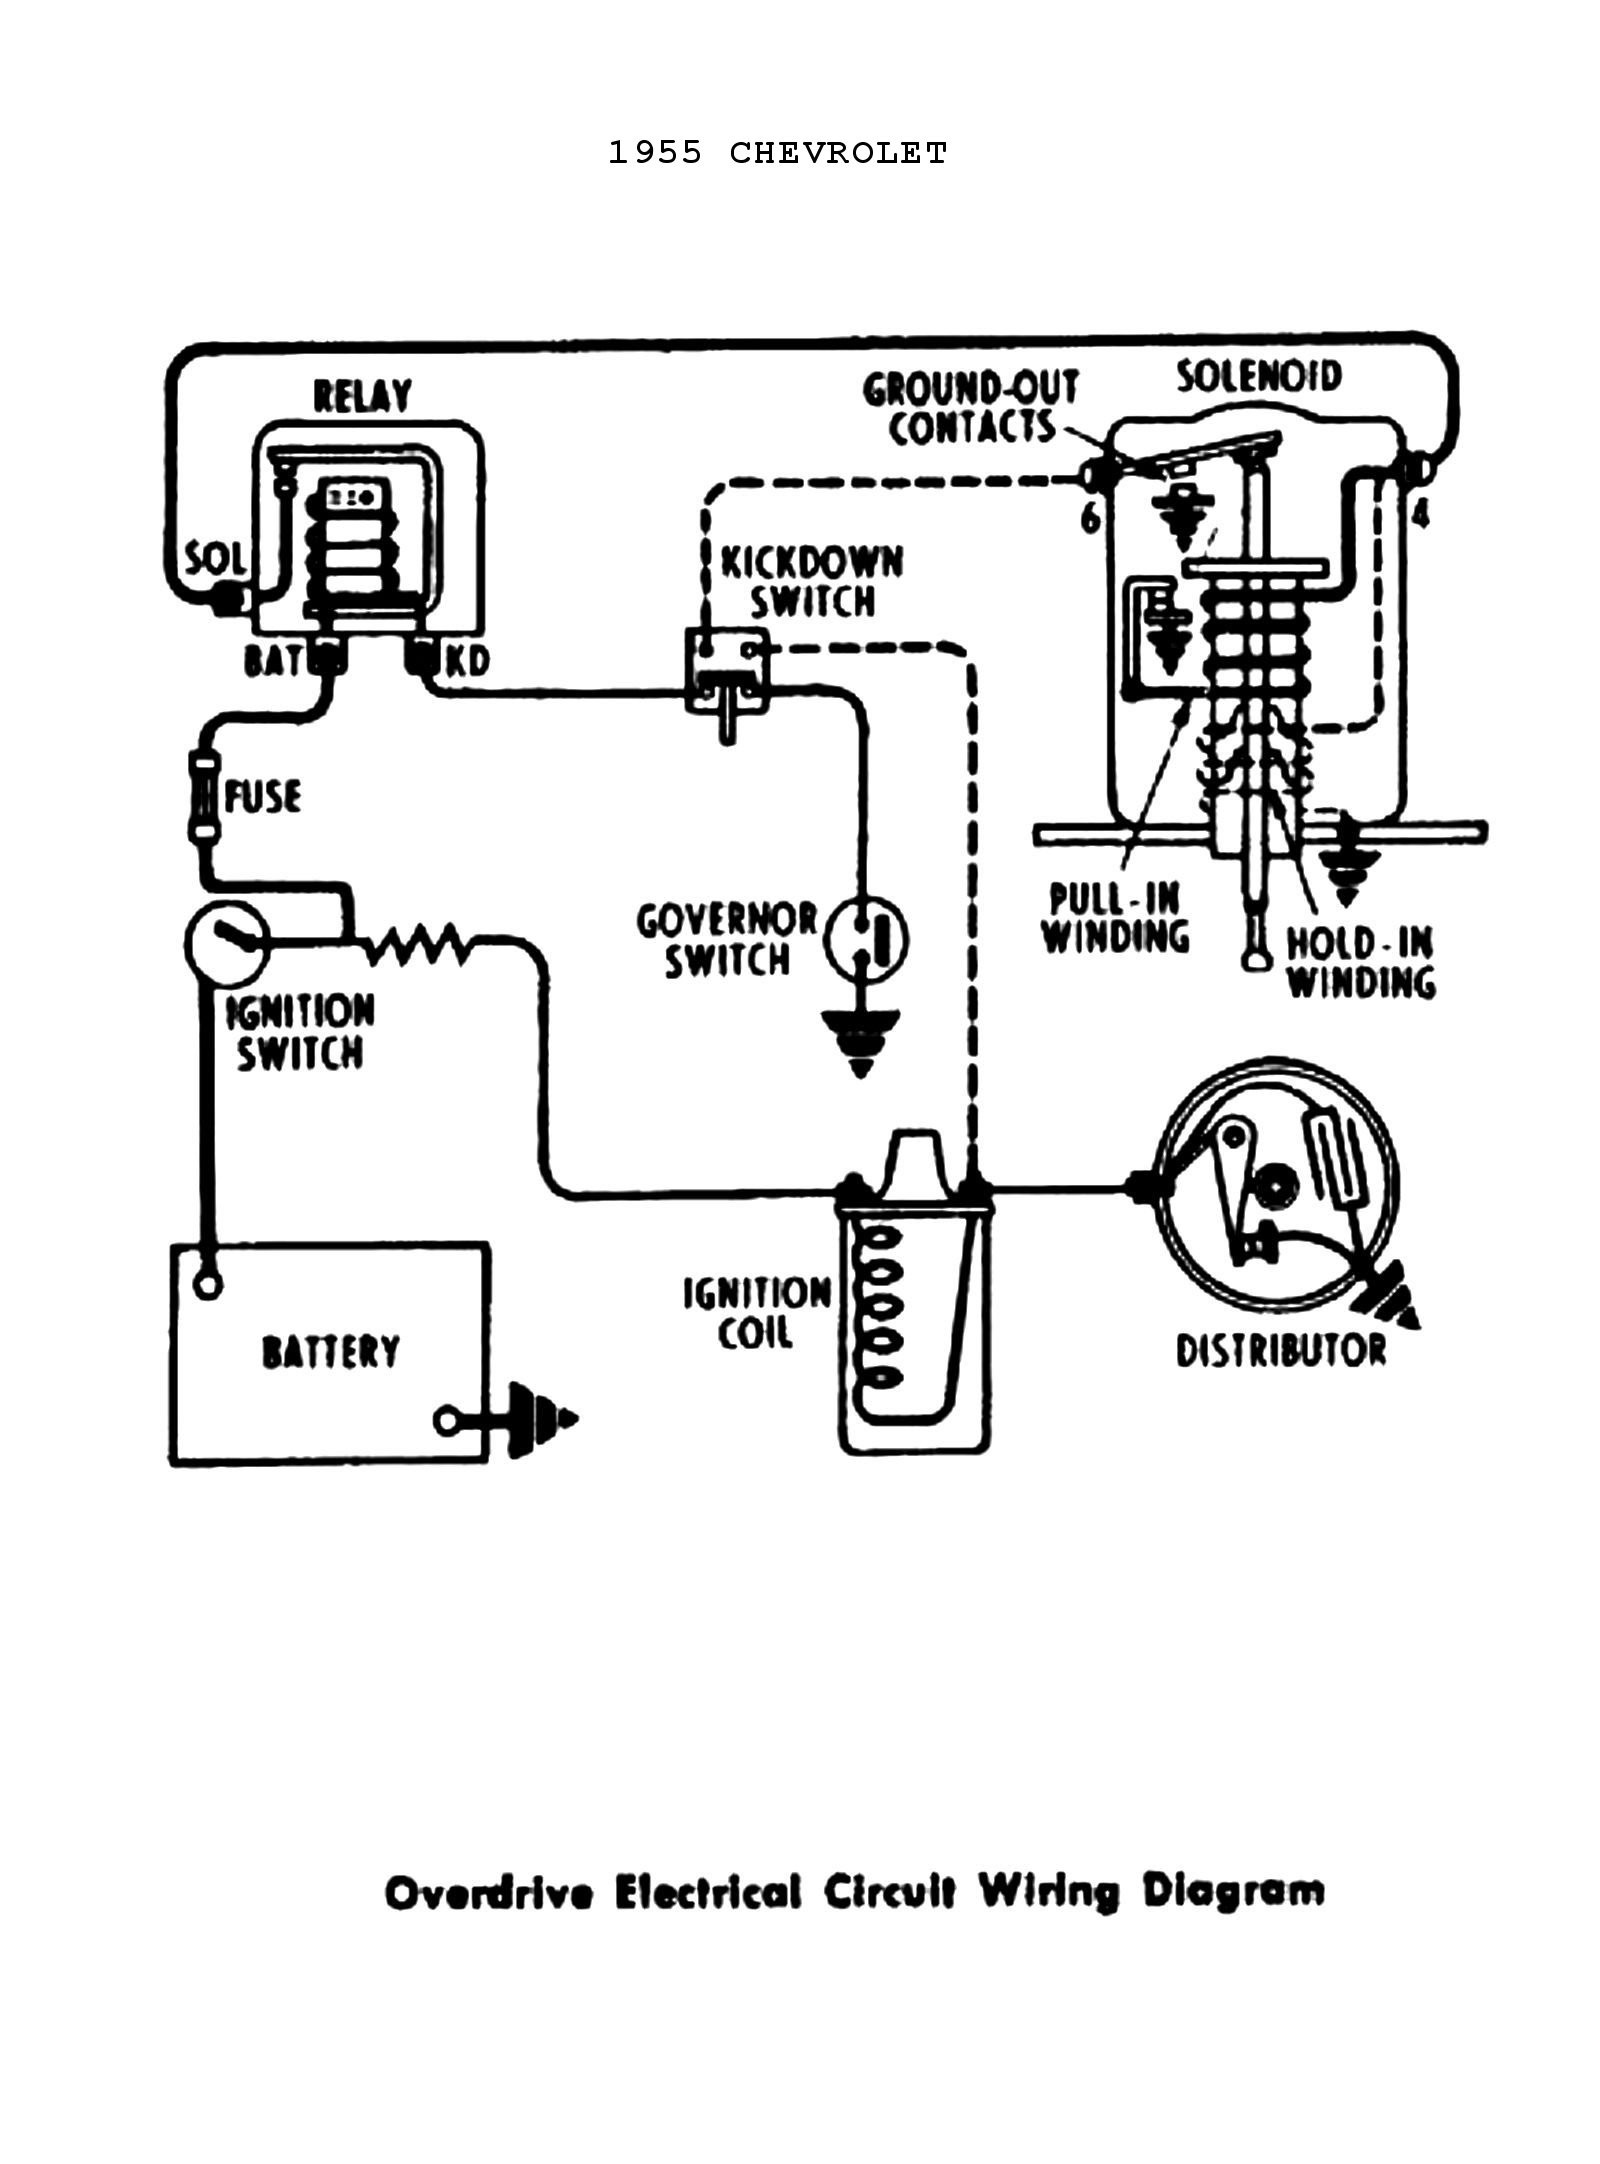 Car electrical system diagram chevy wiring diagrams of car electrical system diagram studebaker technical help studebakerparts